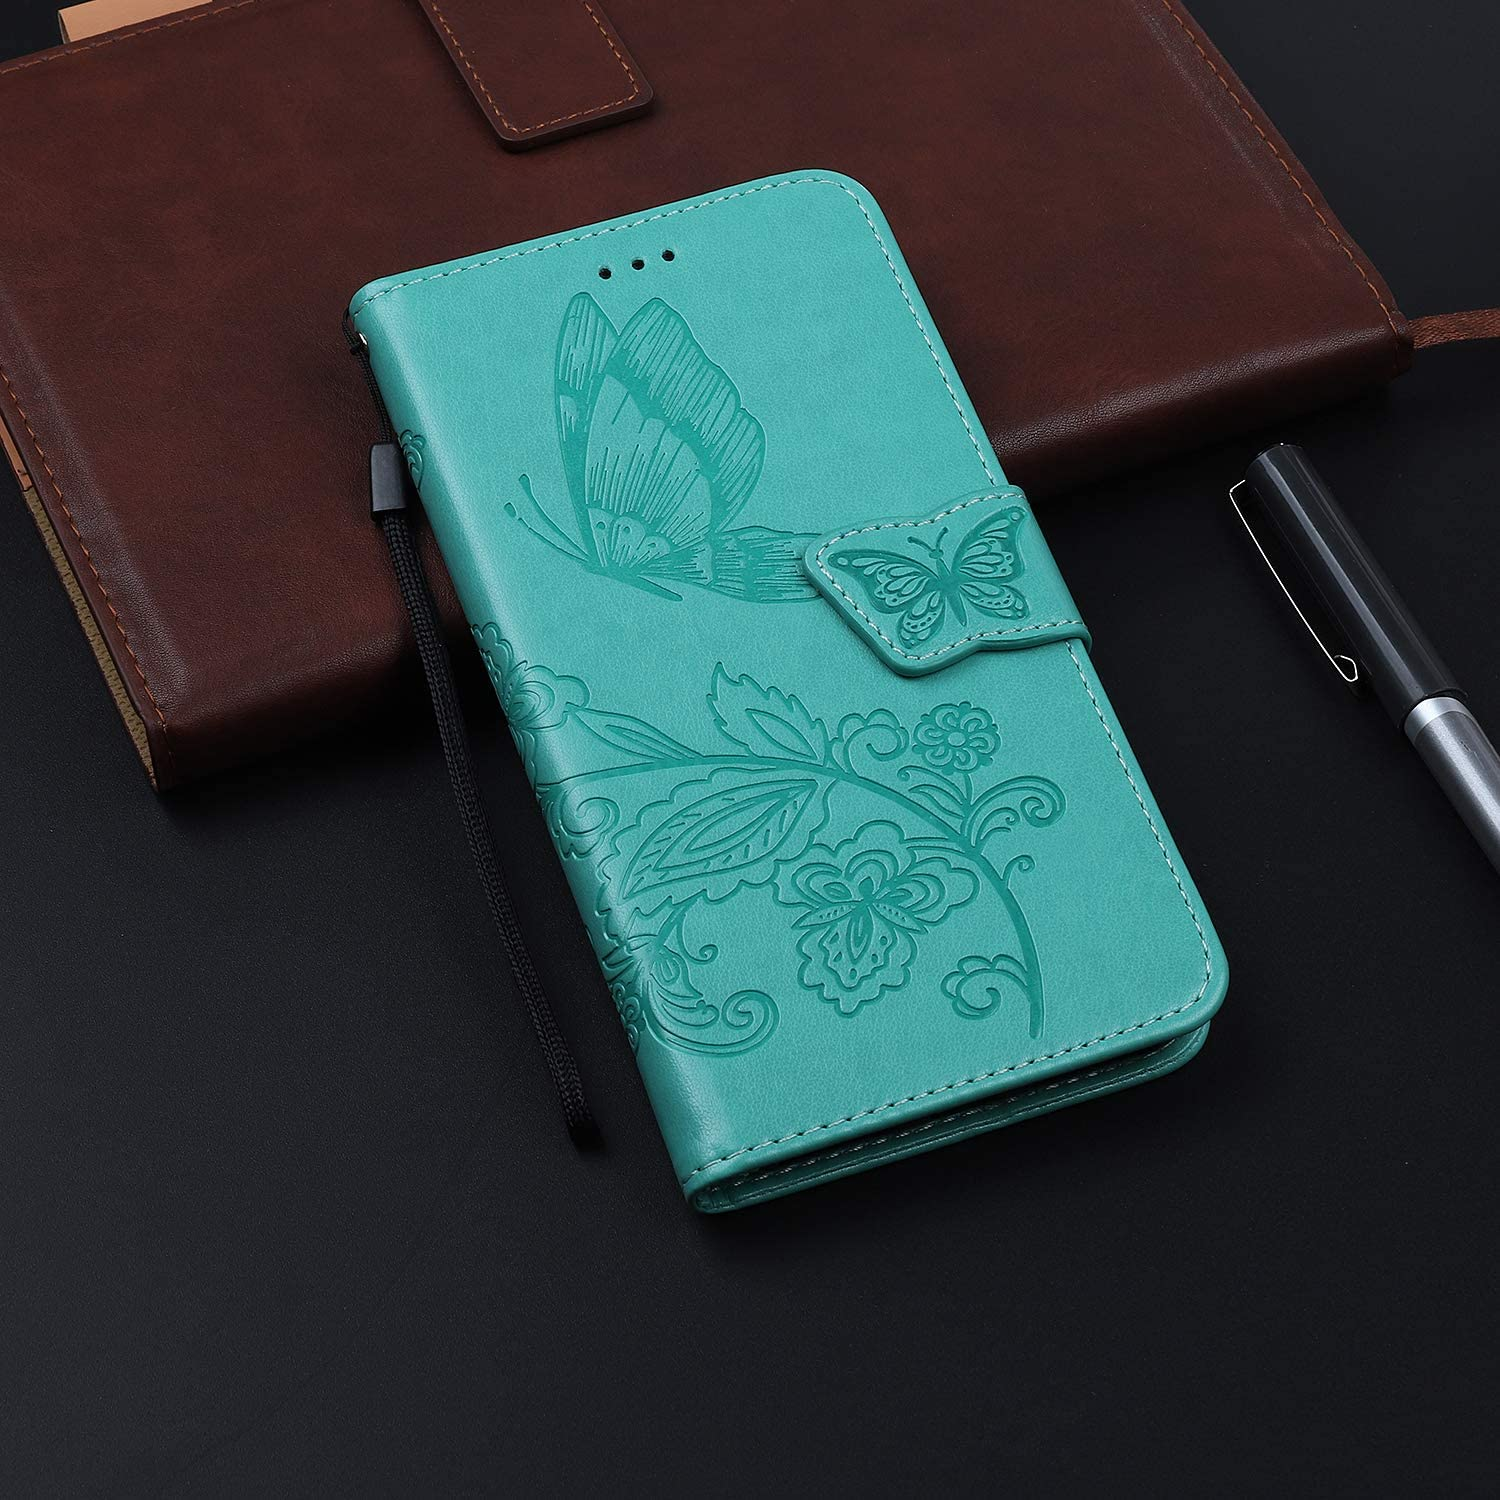 Thoankj Samsung Galaxy A70 Case PU Leather Flip Notebook Slim Fit Wallet Phone Case Butterfly with Kickstand Credit Card Slot Holder TPU Gel Bumper Folio Protective Cover for Samsung Galaxy A70 Blue